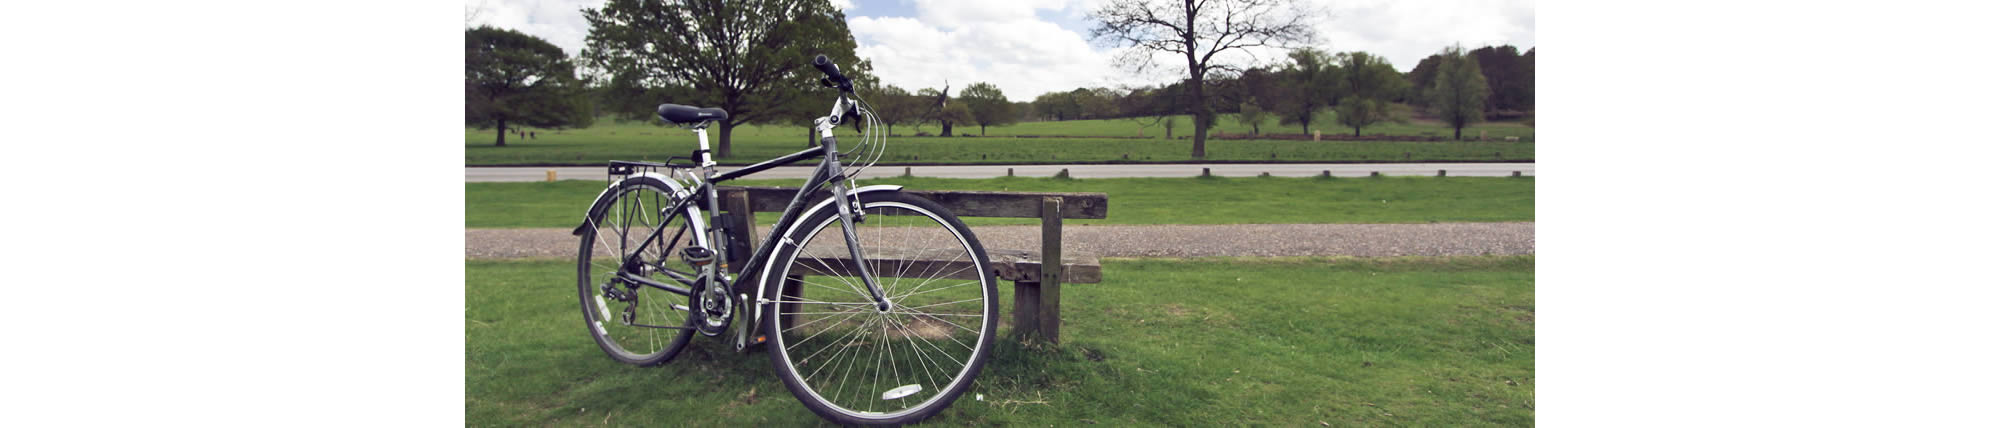 Richmond Station Cycle Centre - bicycle hire, repairs ...